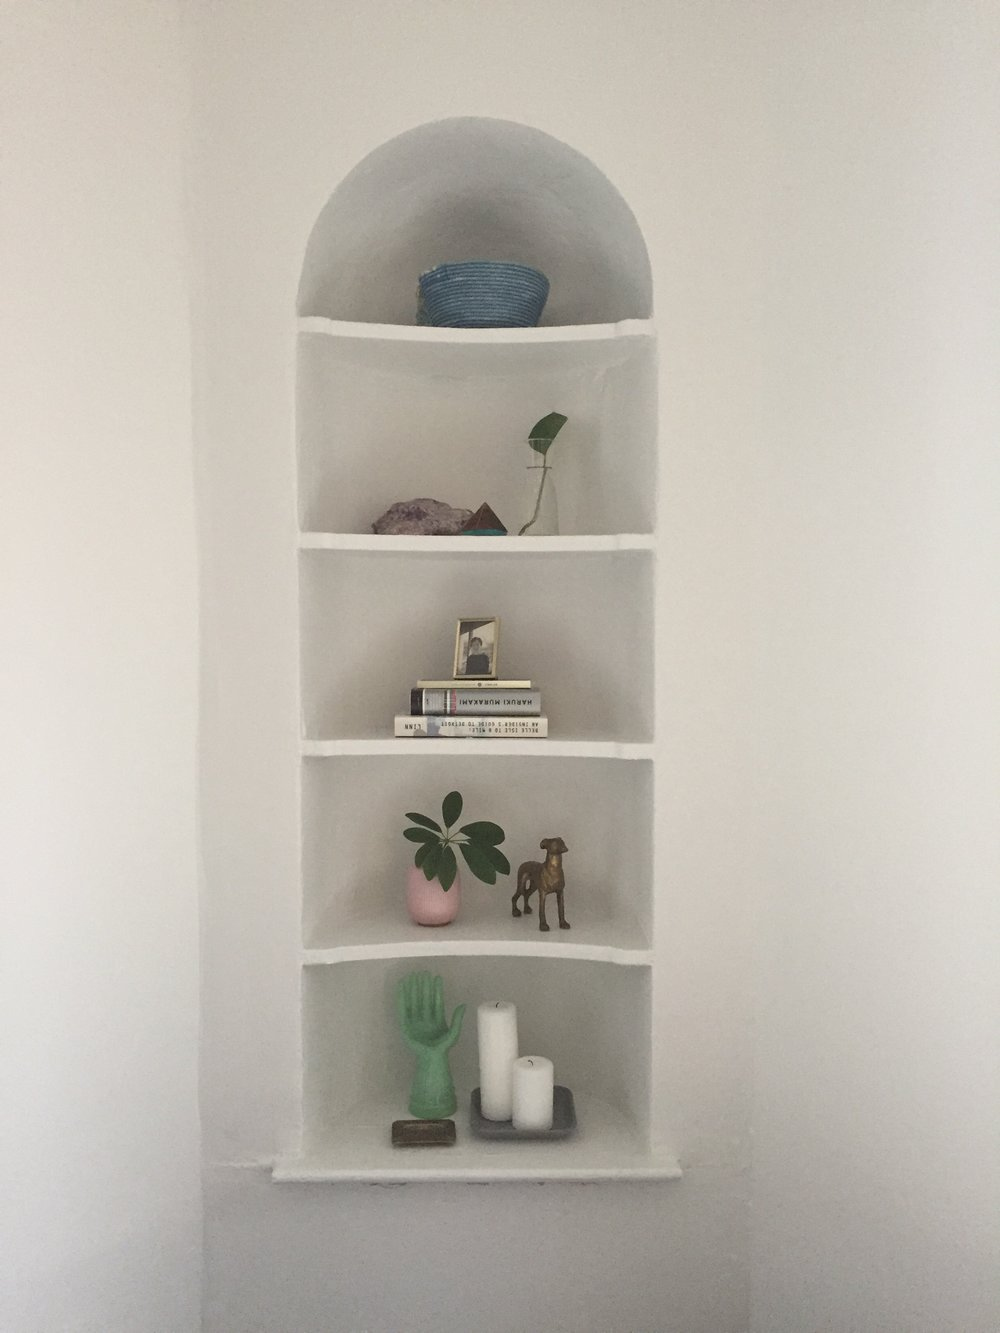 large pale indigo rope bowl as a shelf display. Image via  Libby Hopper Trajkovski